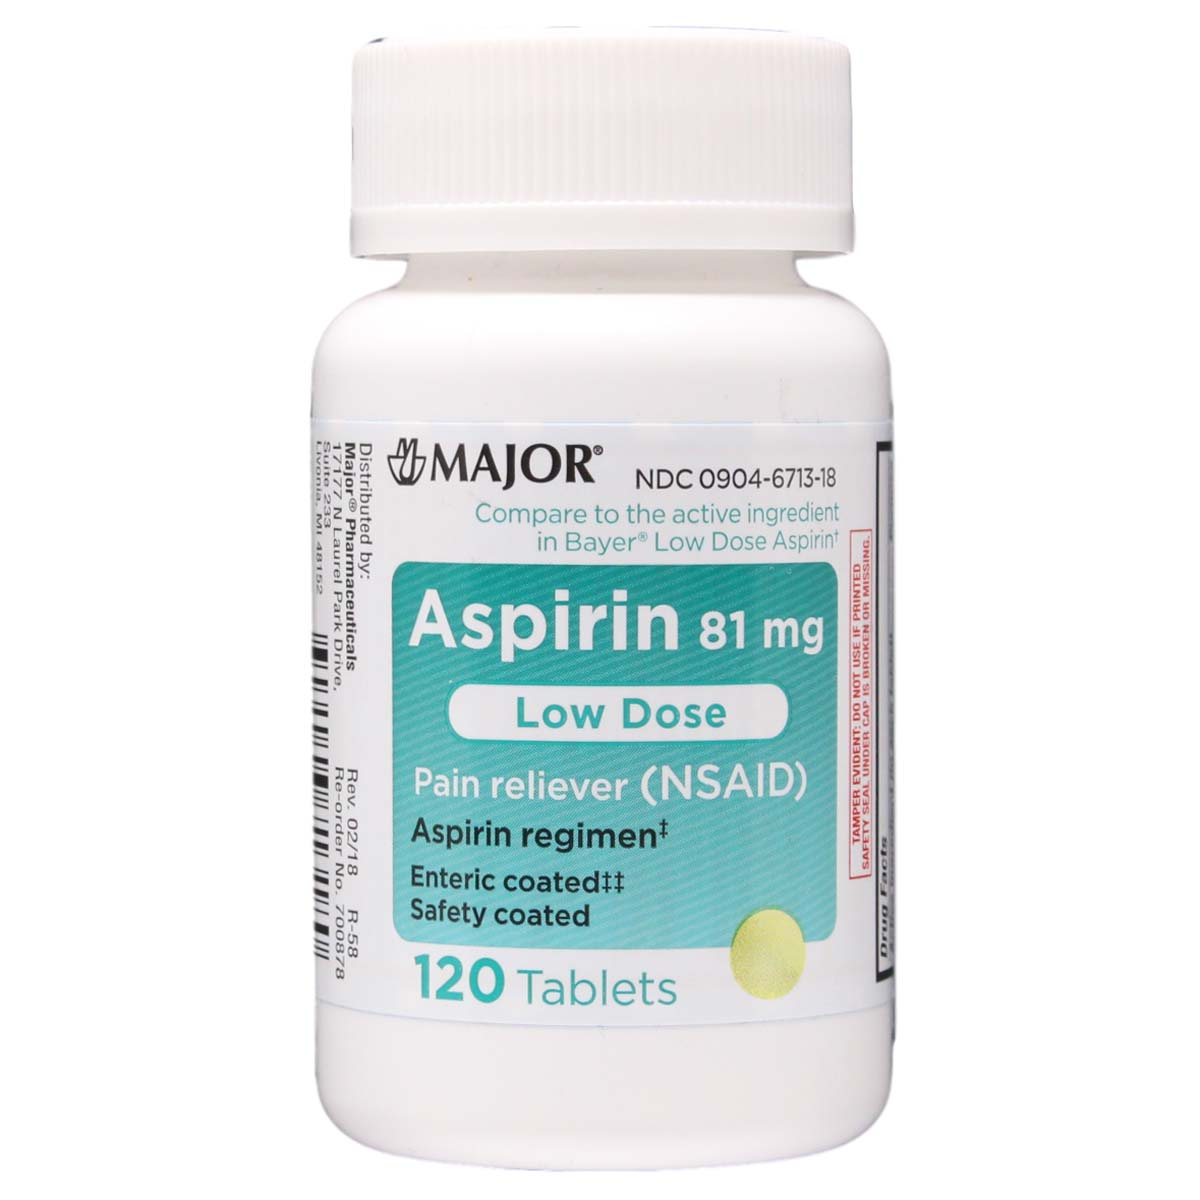 Aspirin Therapy: How Much Is Too Much? - WebMD